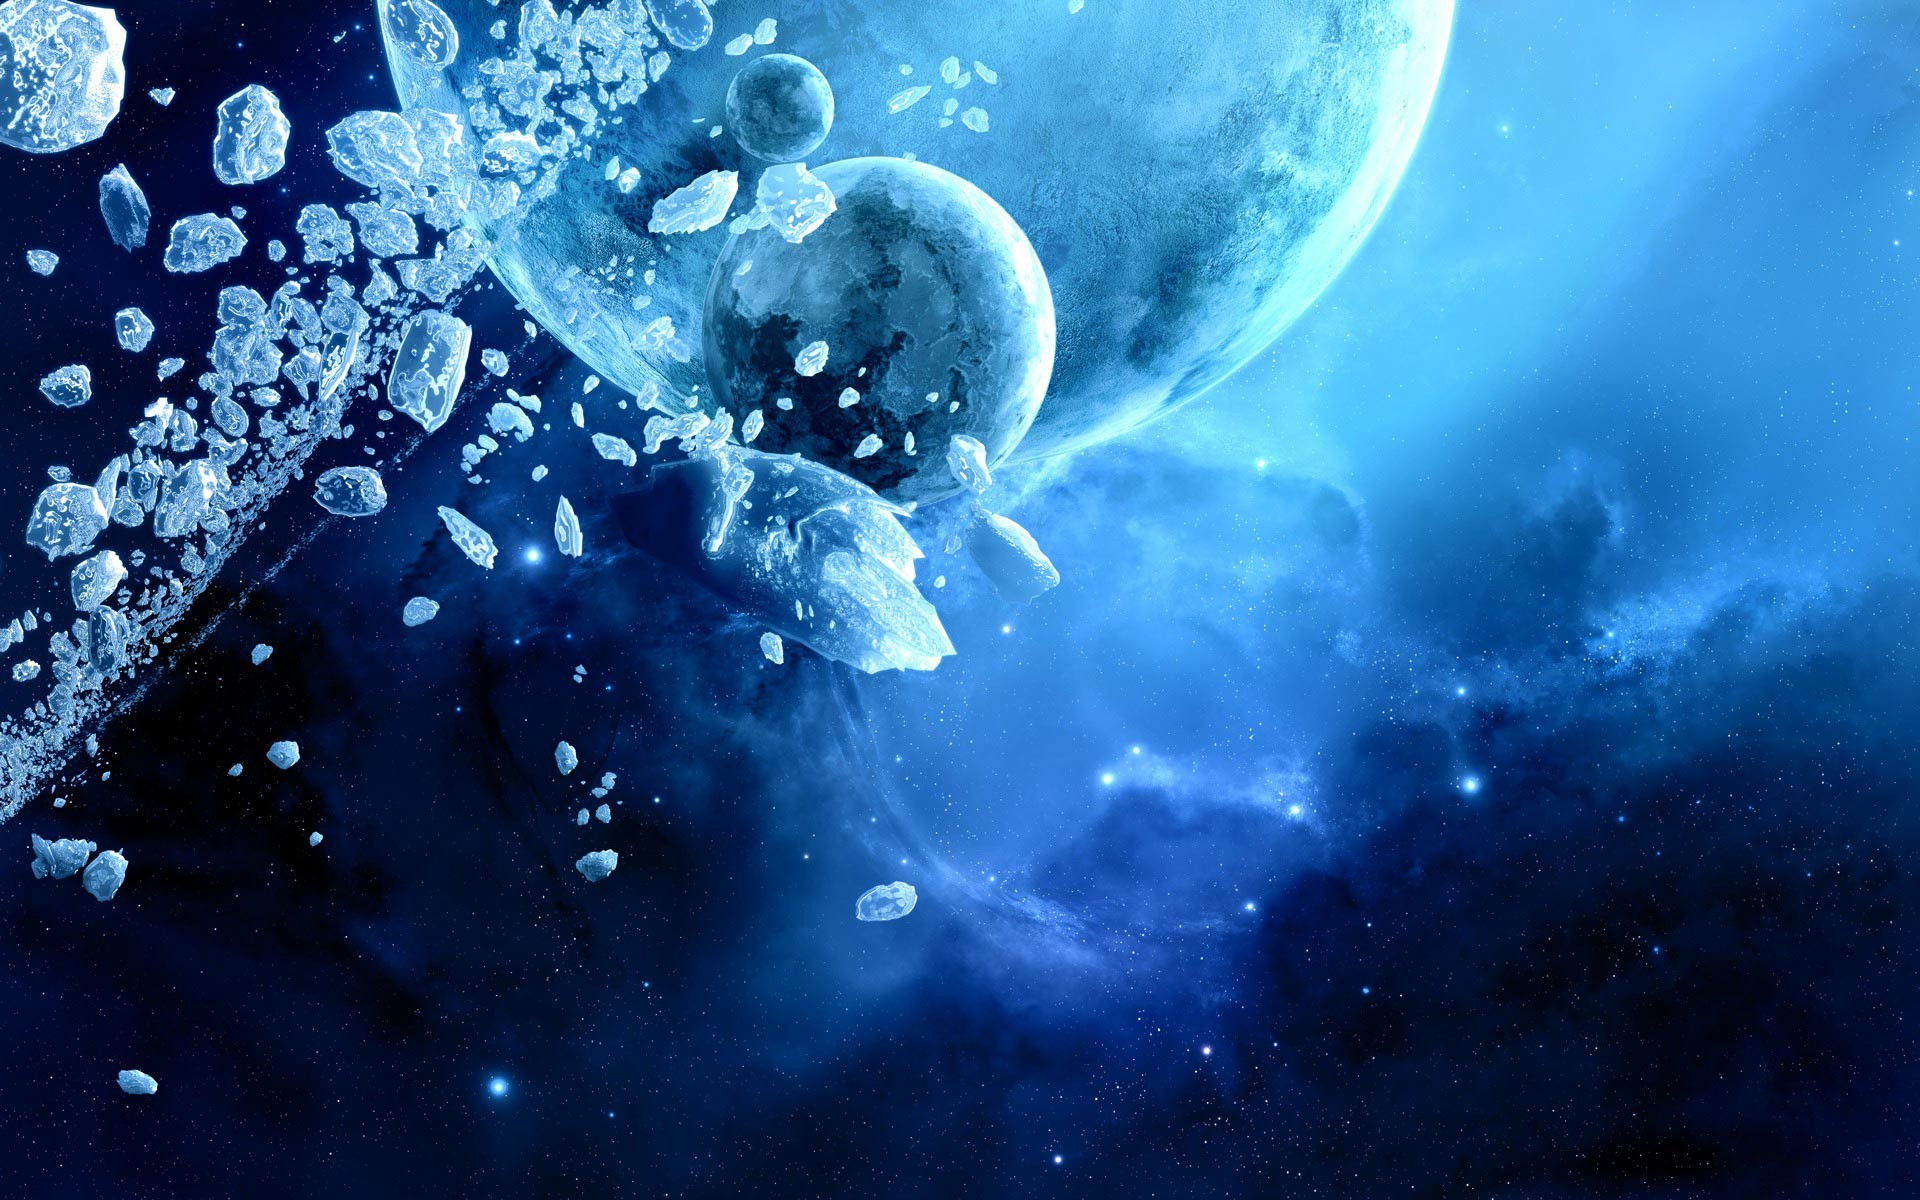 High Resolution Space Wallpapers 2